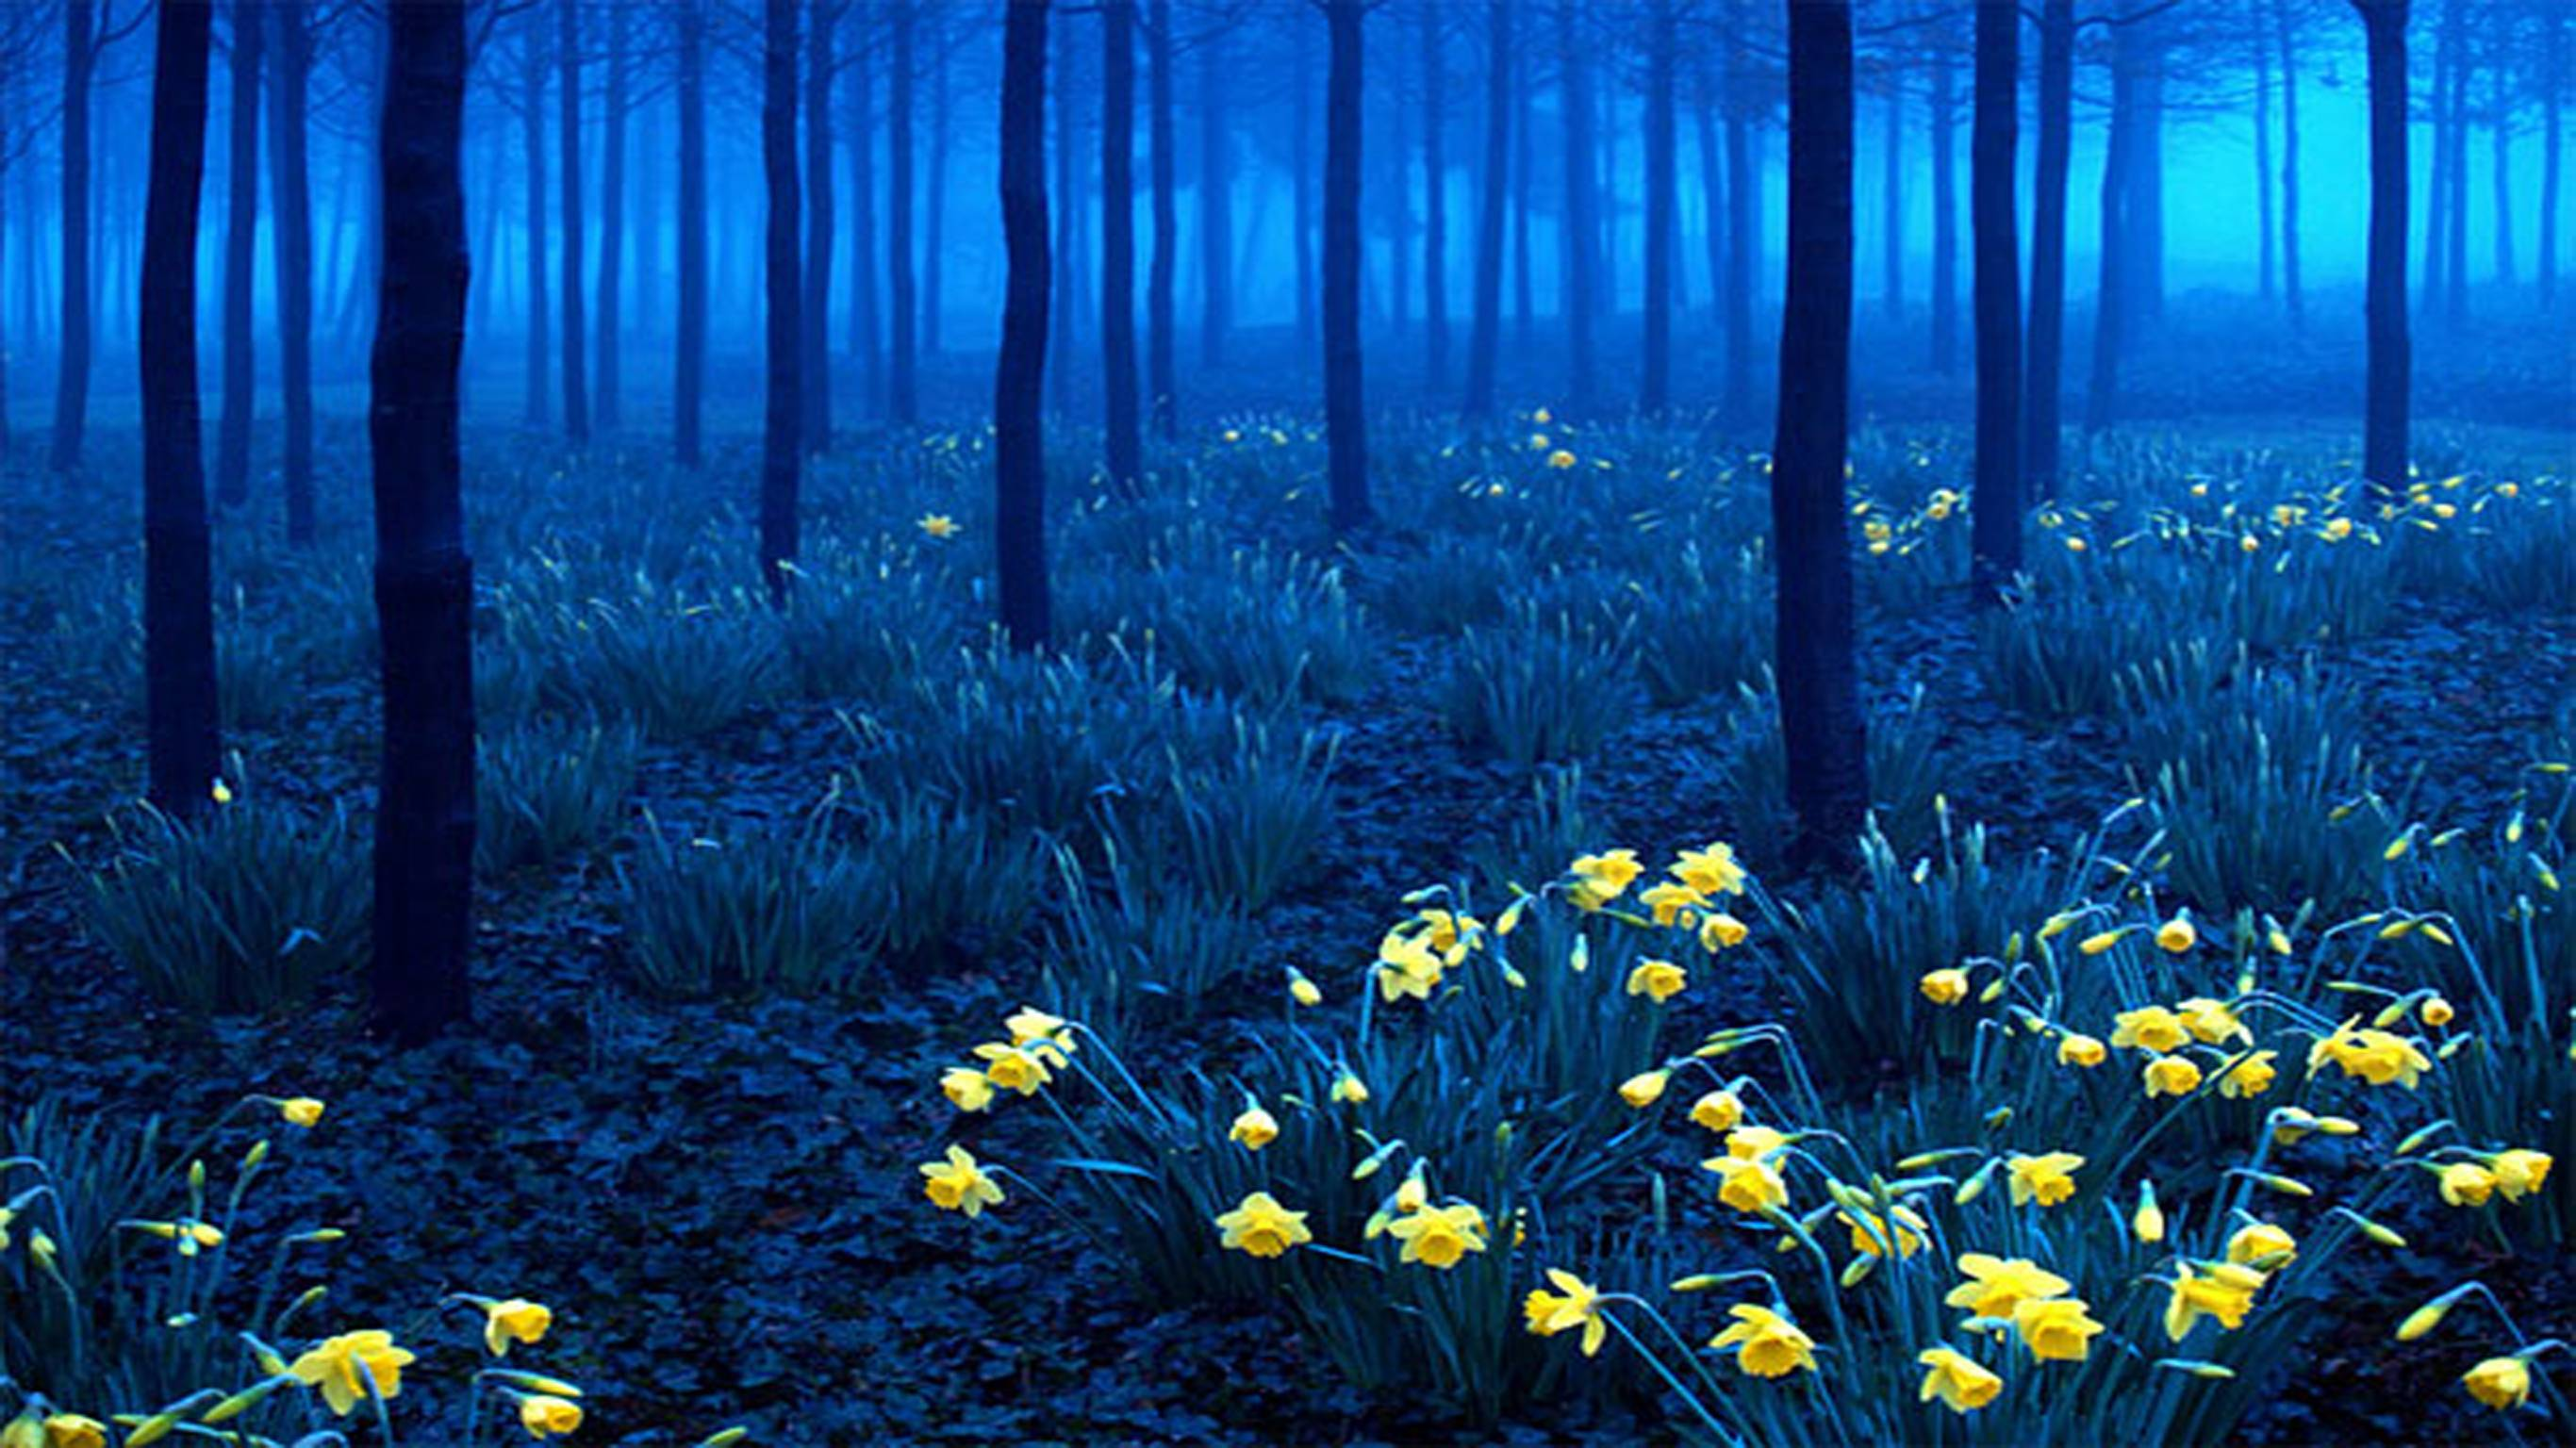 black forest wallpapers Wallpapers HD Image 11860